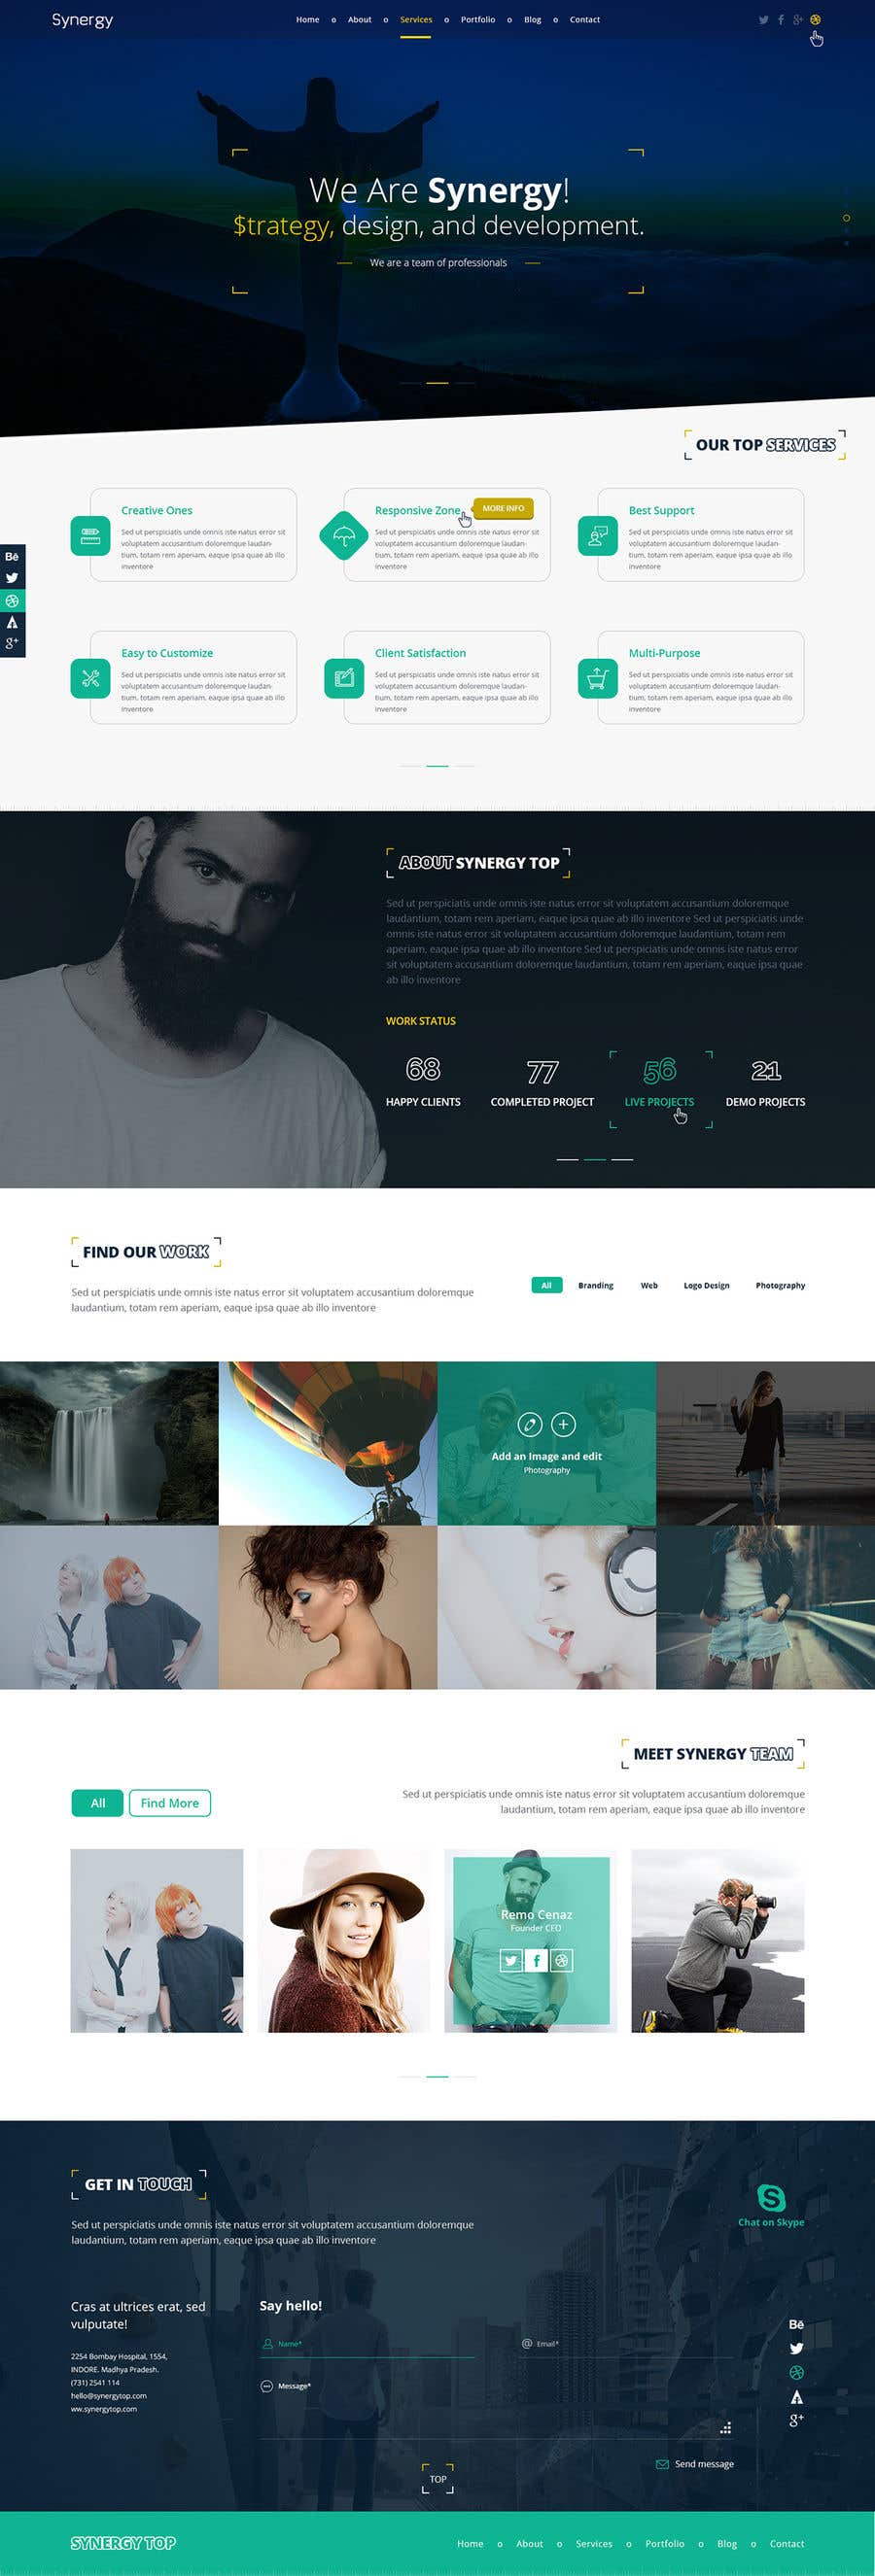 Contest Entry #                                        15                                      for                                         Redesign Pinterest UI/UX Homepage/Profile page